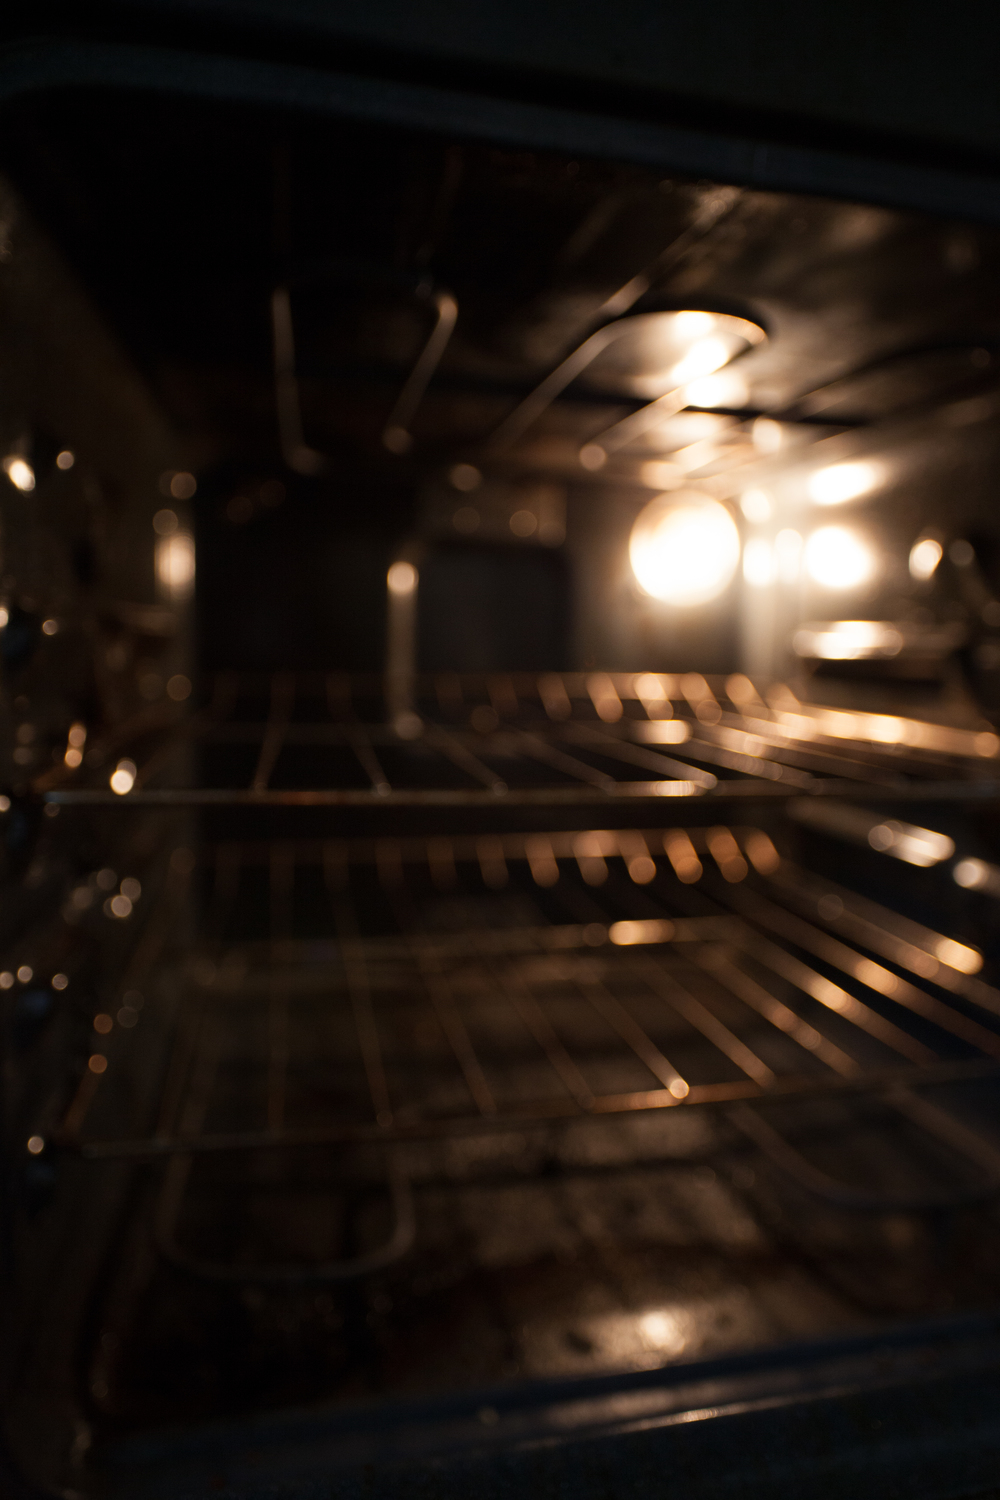 Keep that light on.  Turn on the oven light (without turning on the oven) to generate enough warmth to incubate your yogurt.